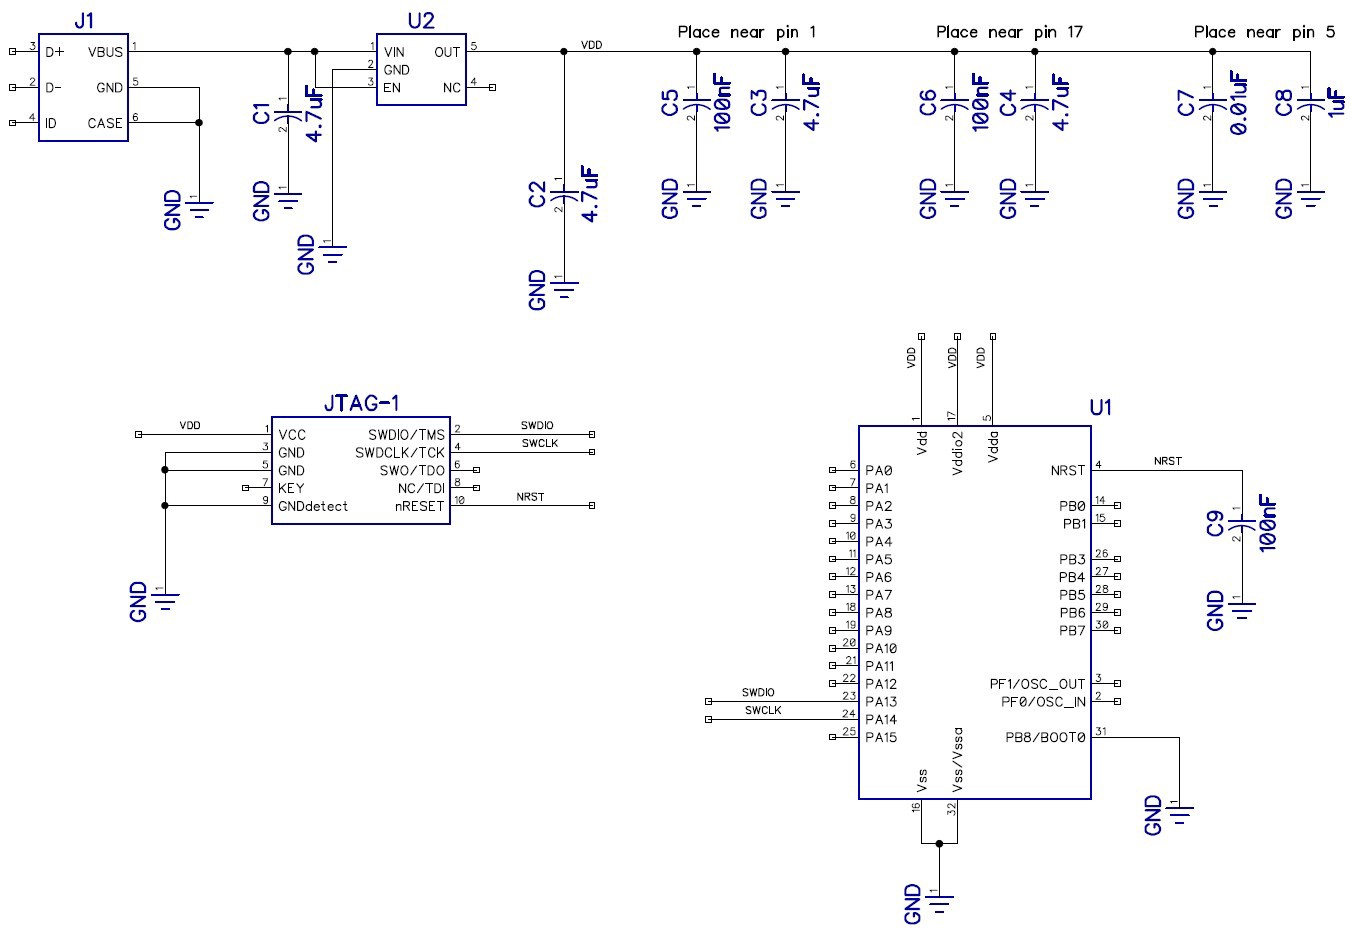 Tutorial How To Design Your Own Custom Microcontroller Board Part 1 Based Schematics Circuits Projects And Figure 3 Schematic Circuit Diagram For This First Showing The Stm32 Linear Regulator Usb Connector Programming